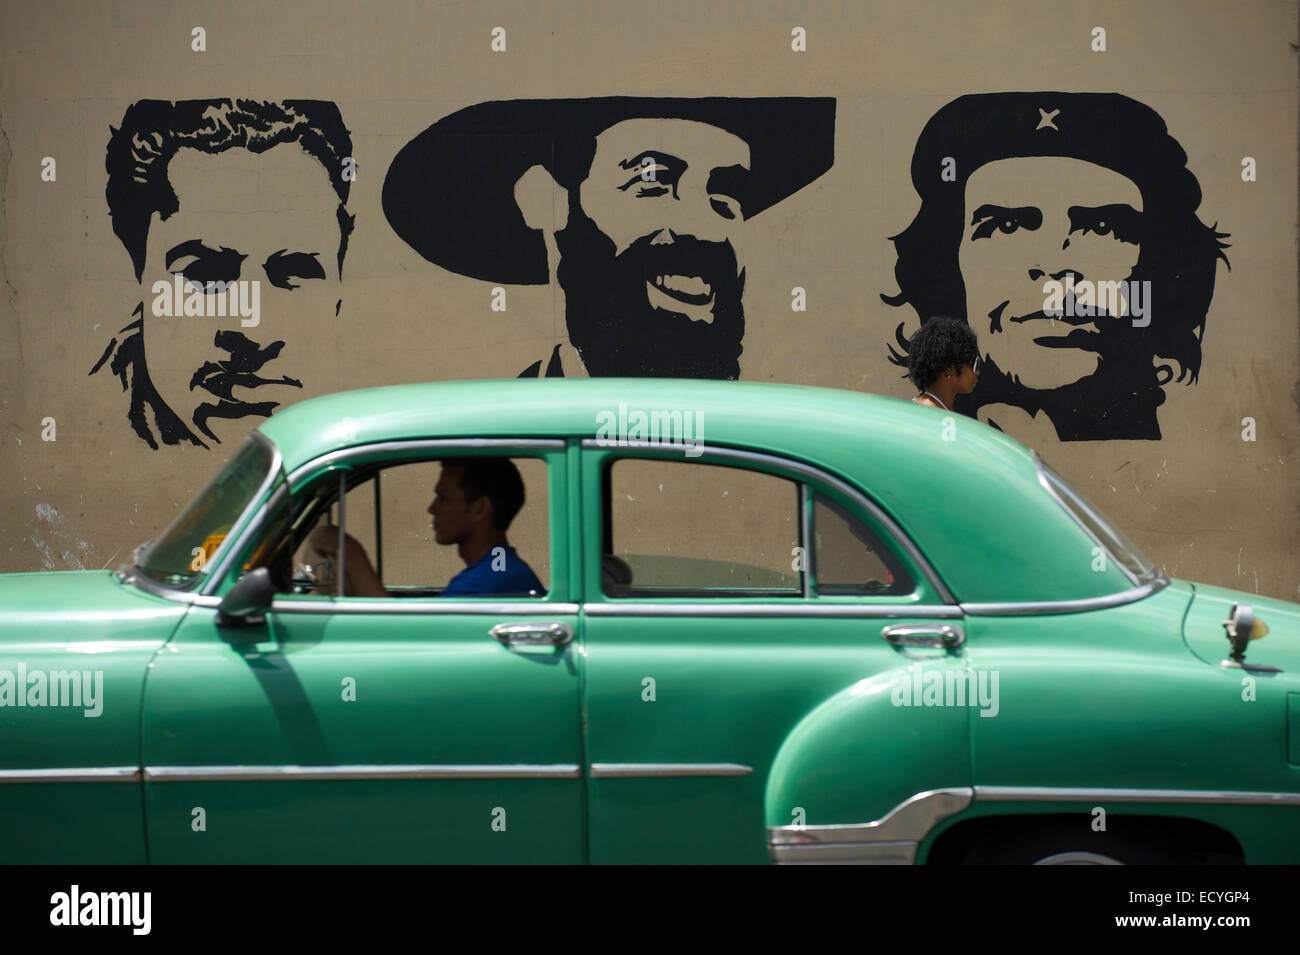 HAVANA, CUBA - JUNE 13, 2011: Classic American car drives past stencil billboard featuring Mella, Cienfuego, and - Stock Image